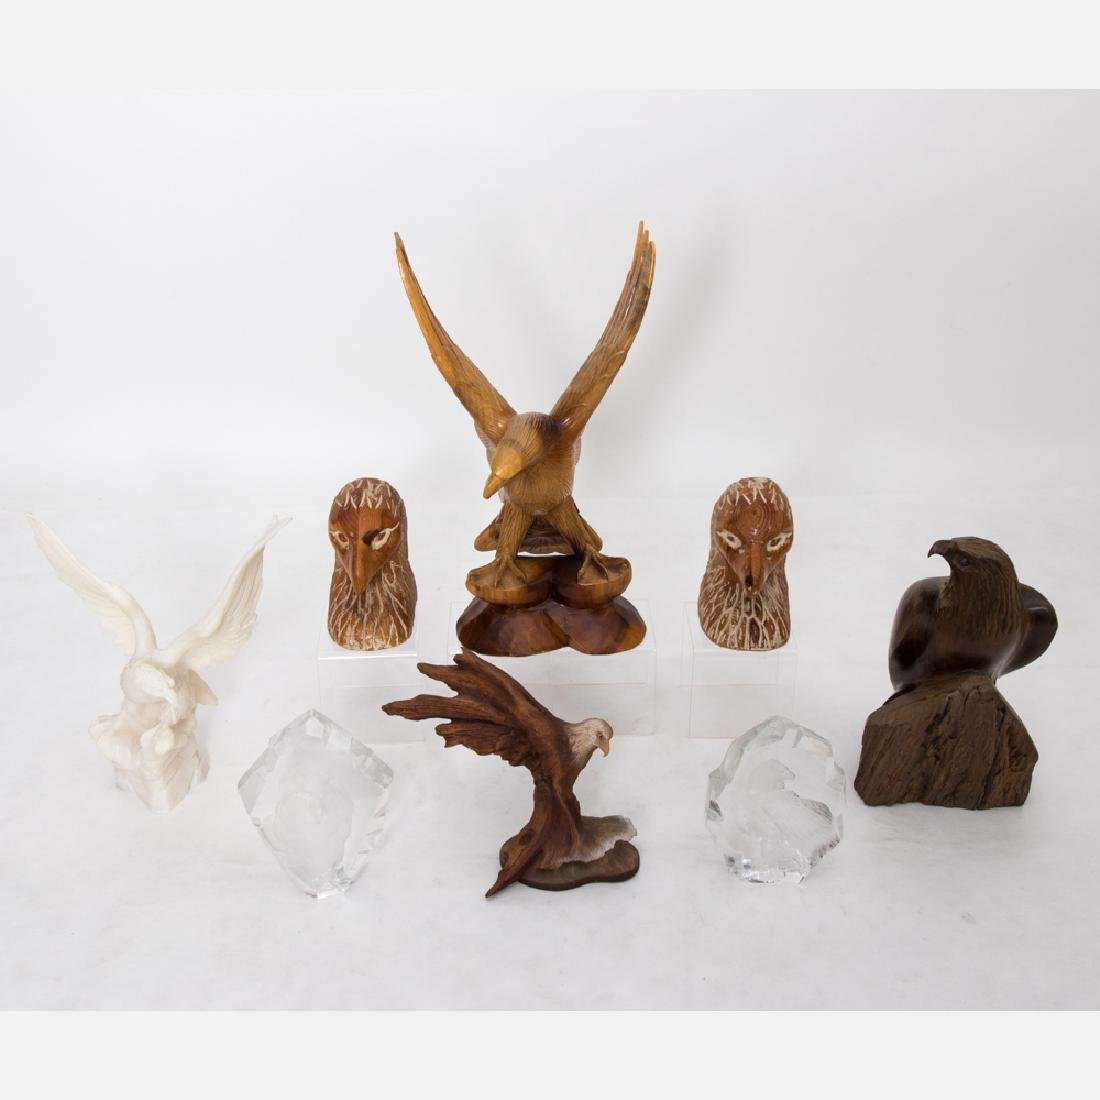 A Miscellaneous Collection of Carved Wood, Crystal and